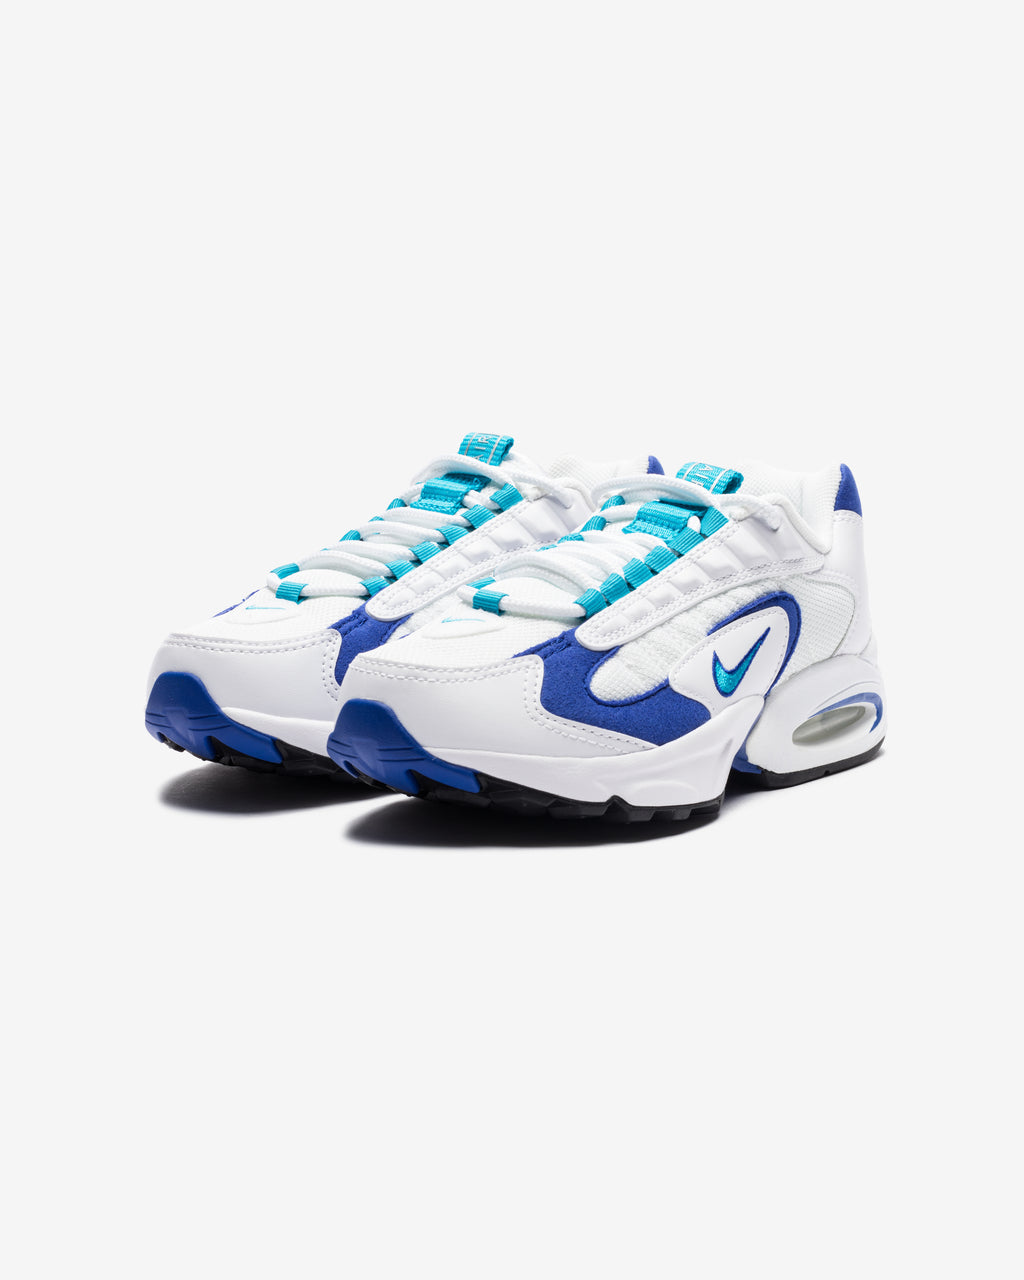 WOMEN'S AIR MAX TRIAX 96 - WHITE/ LAGOON/ NEWPORTBLUE/ BLACK